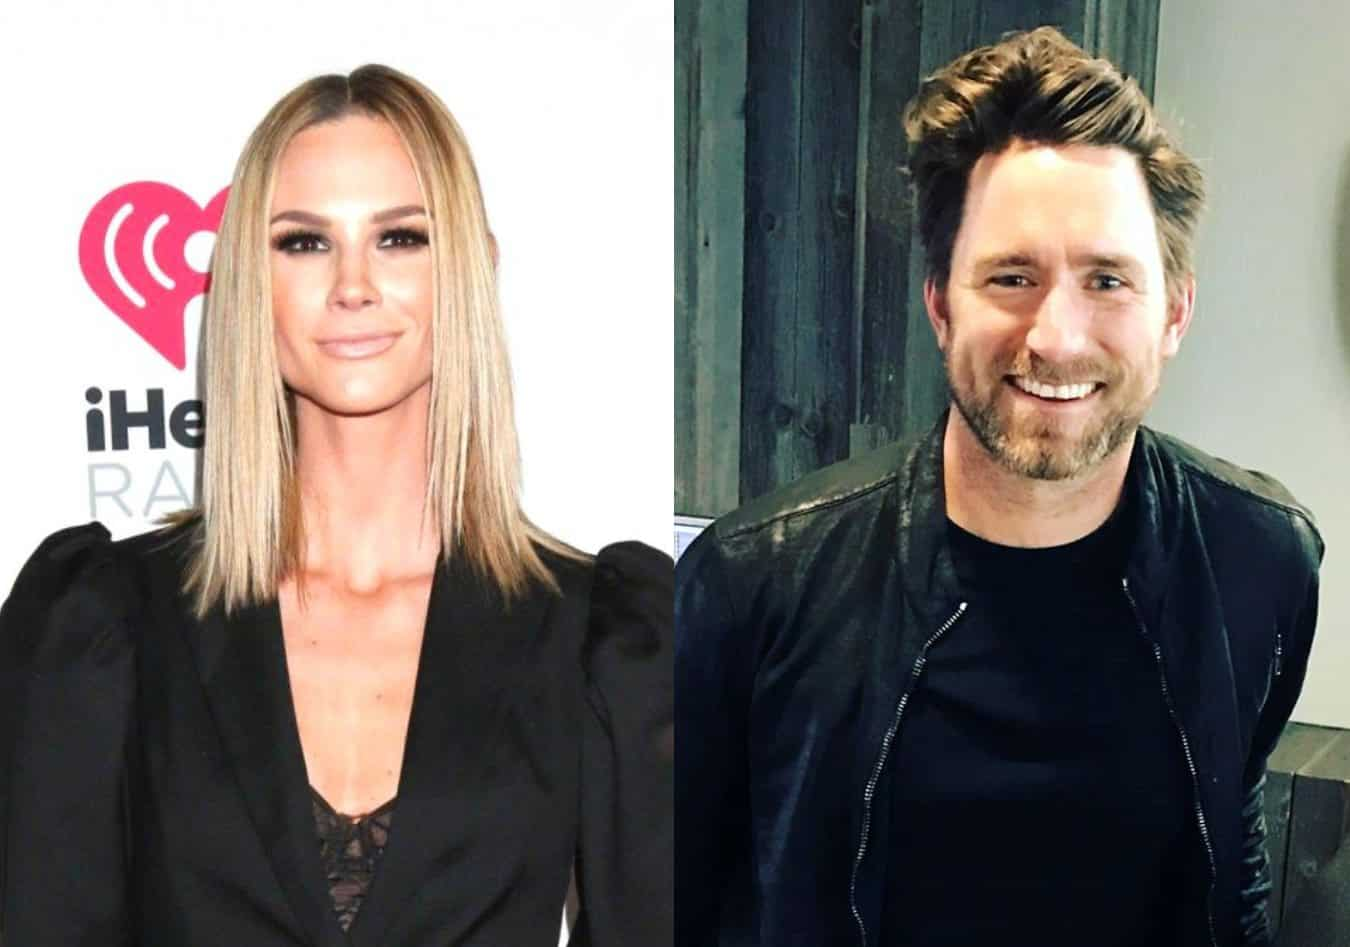 REPORT: Christian Schauf Ends Relationship With Meghan King Edmonds After 6 Months of Dating as Sources Share His Reason For Split, Plus His Reaction to Her New Home